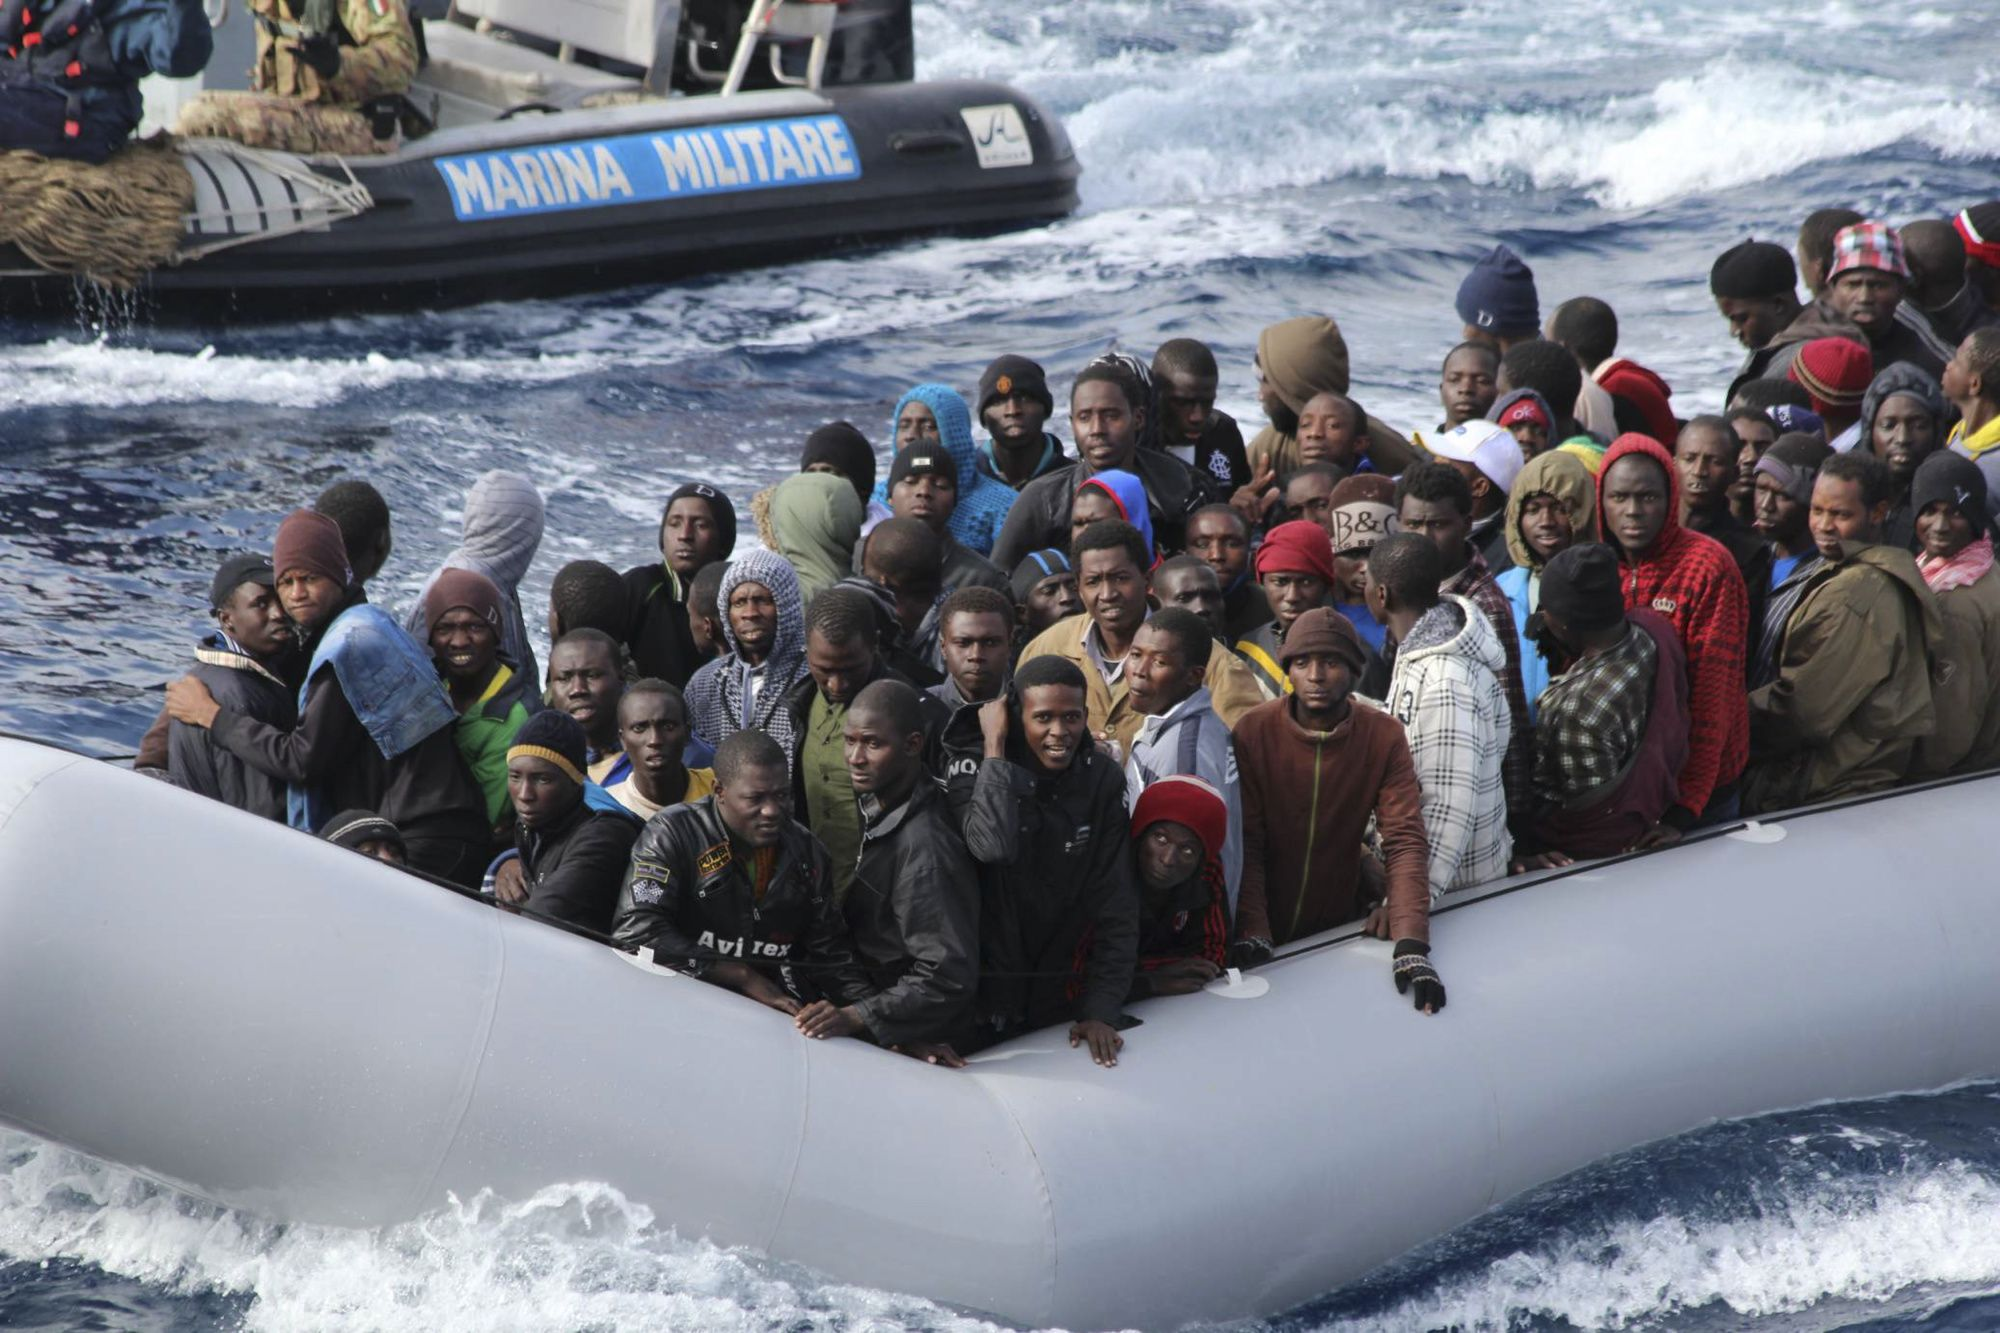 Migrant Crisis: Italy and Others Involved In Rescue Operations - http://gazettereview.com/2015/06/migrant-crisis-italy-and-others-involved-in-rescue-operations/